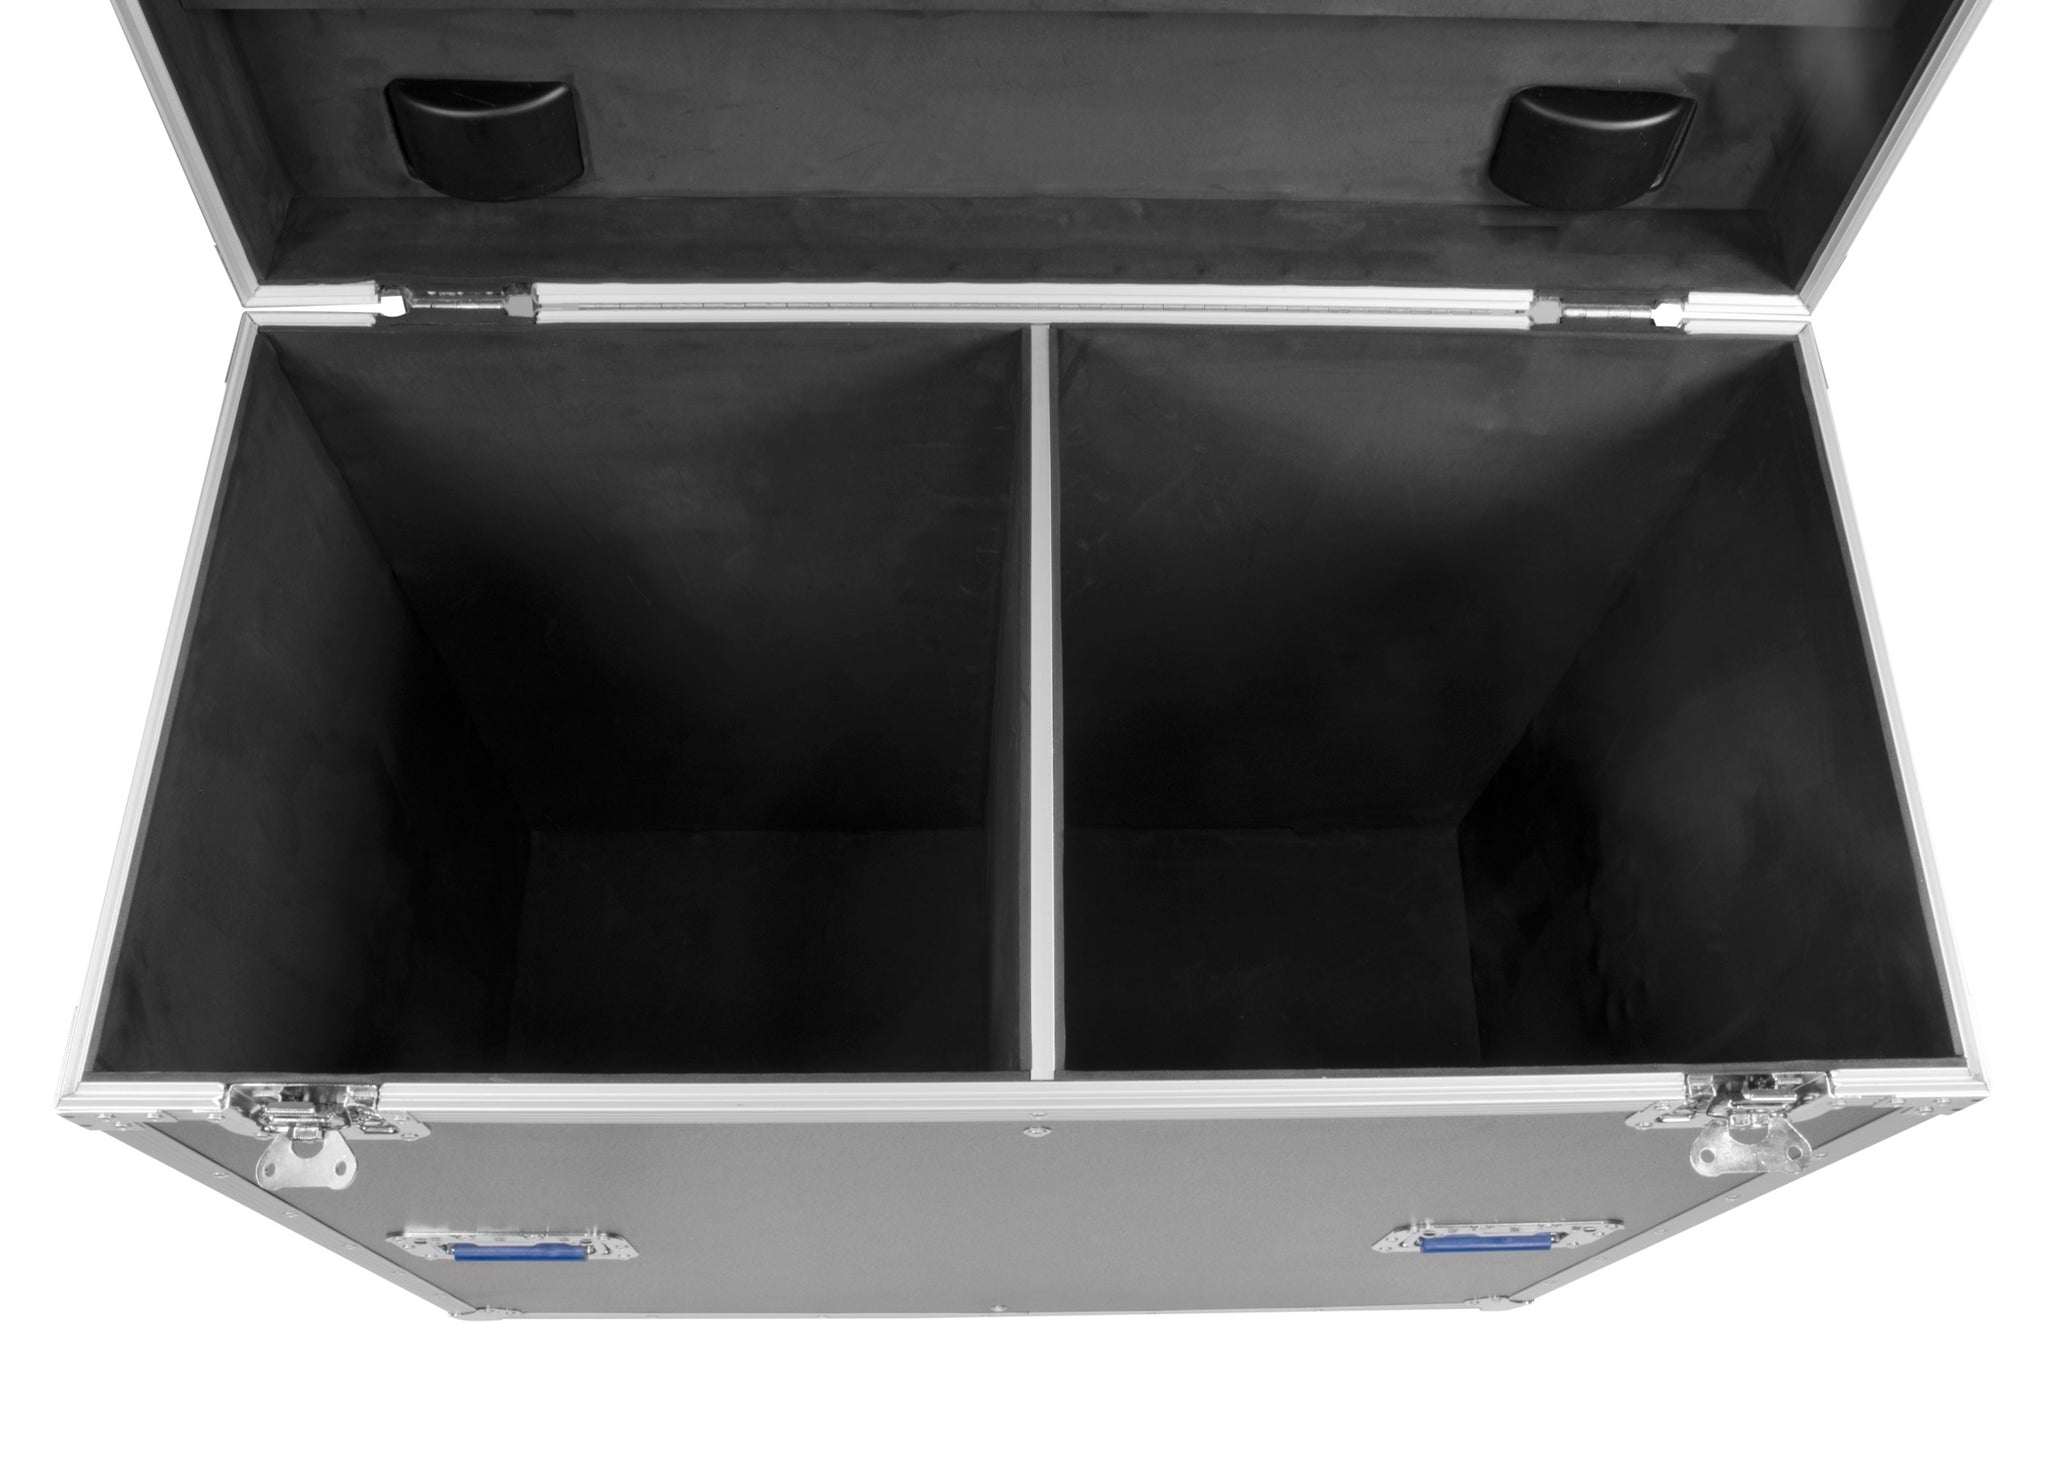 "OSP ATA-SPKR-LG Top Loading Speaker Case - Fits Most 15"" Speakers"